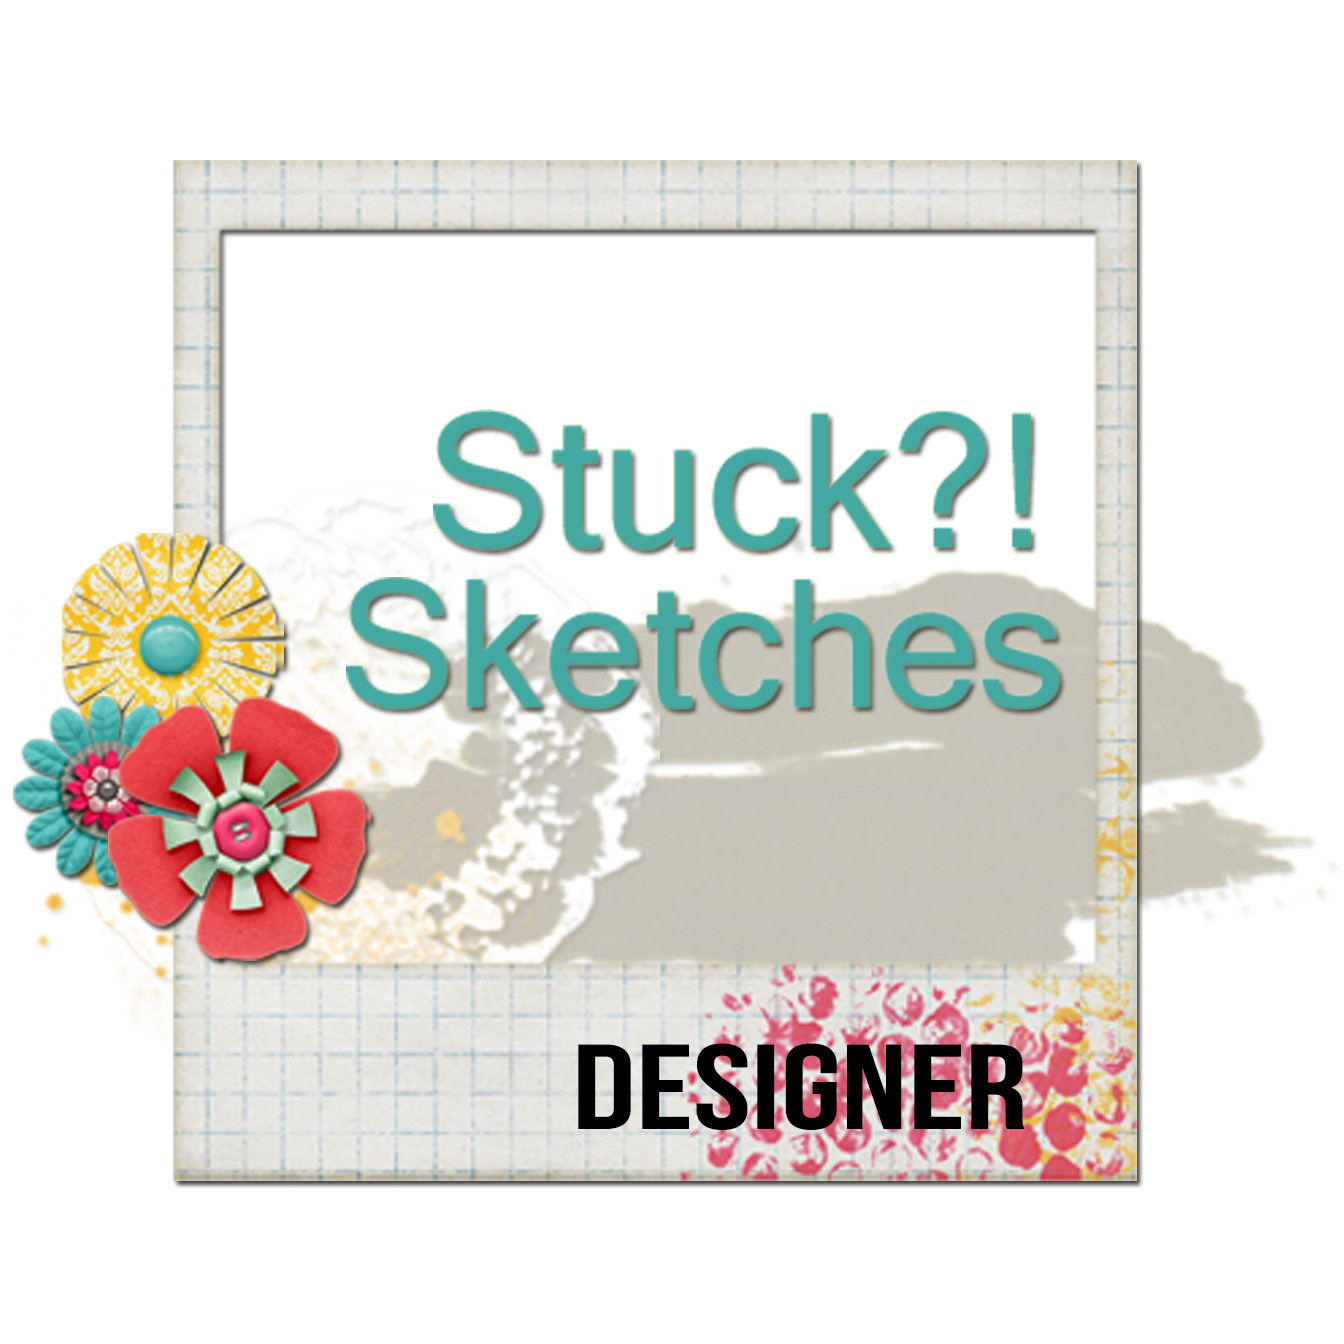 Design Team Stuck?! Sketches